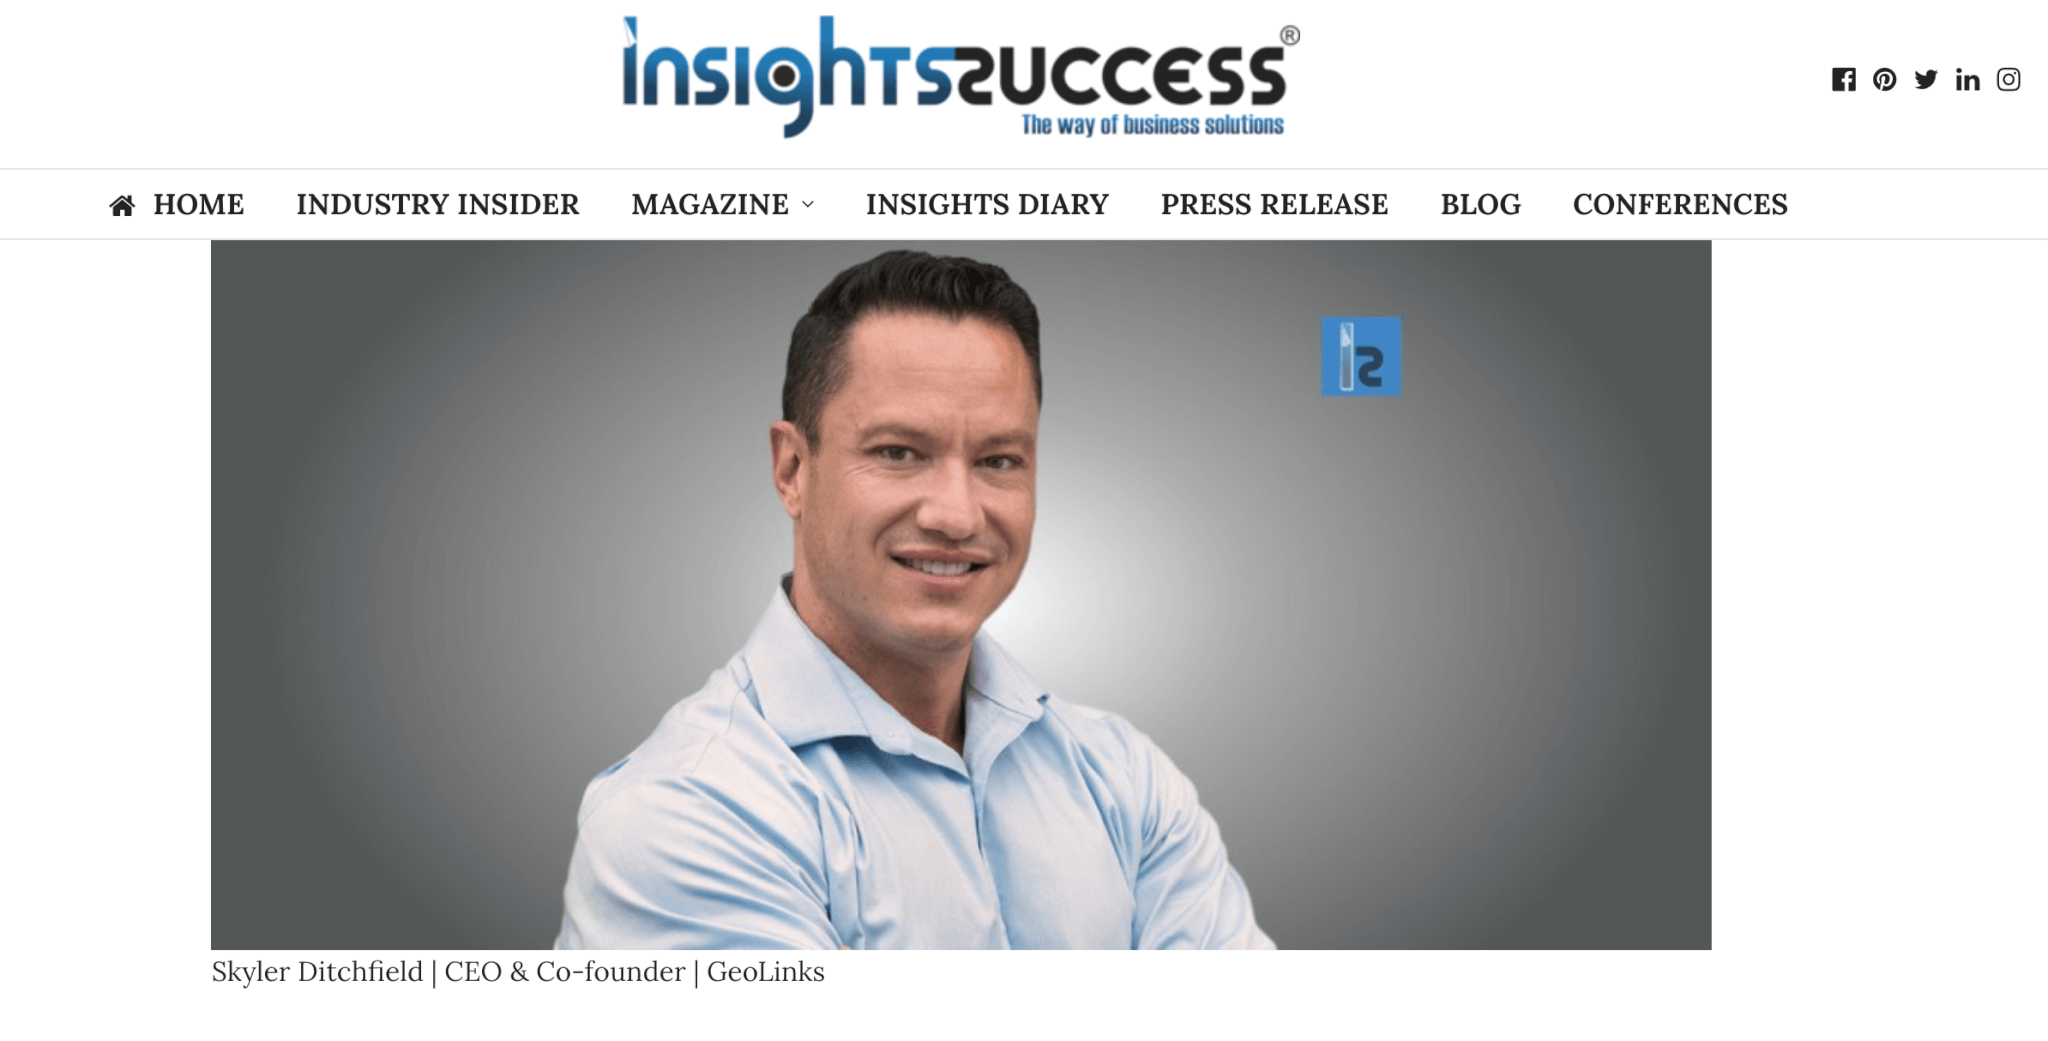 Skyler Named Most Inspiring Entrepreneur of 2019 by Insights Success